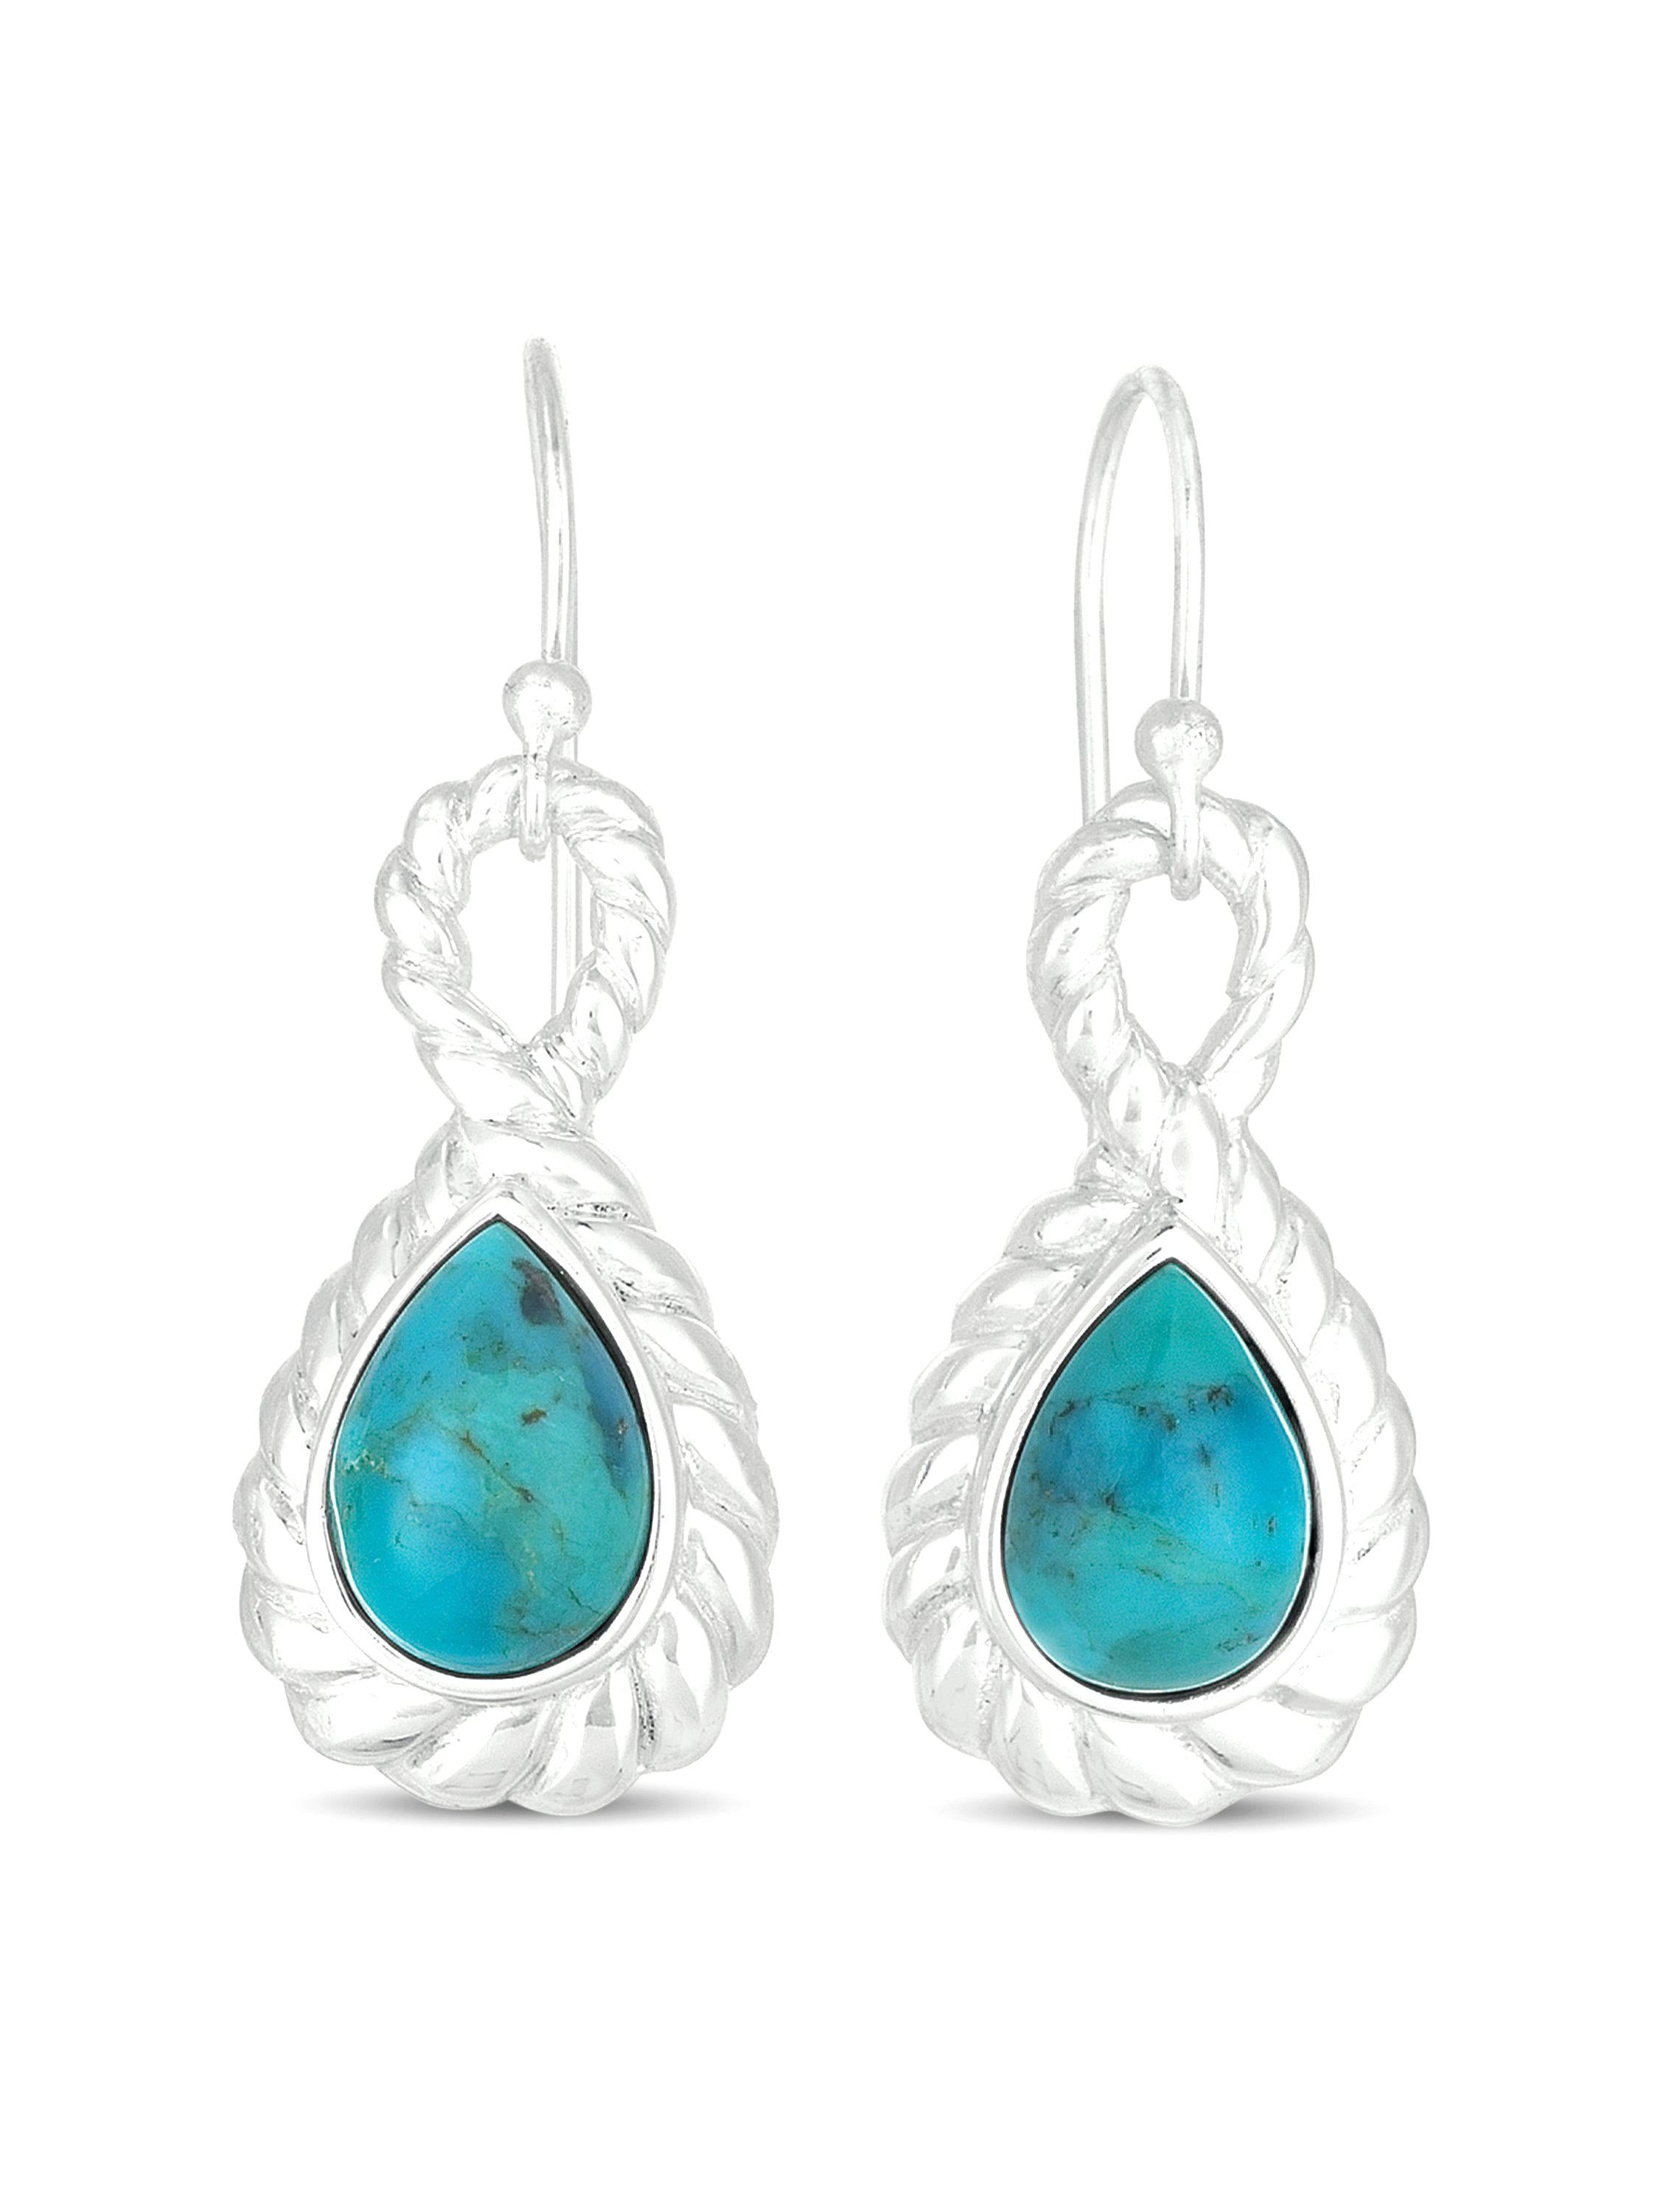 TURQUOISE STERLING SILVER DROP EARRINGS picktookshop.myshopify.com [gogle] [sale] [online]